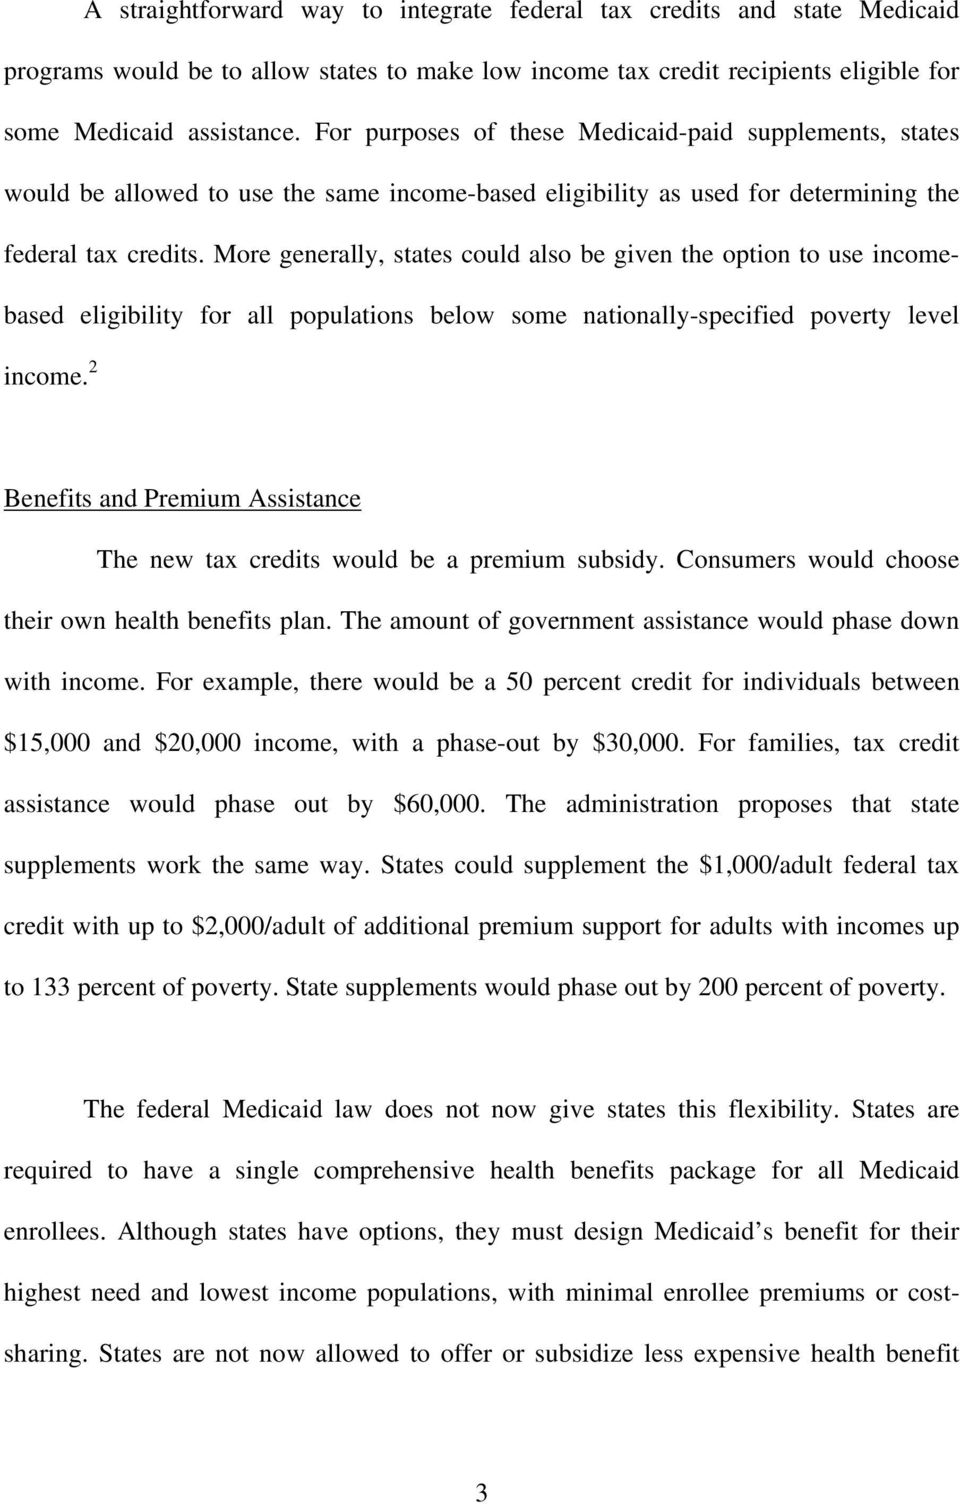 More generally, states could also be given the option to use incomebased eligibility for all populations below some nationally-specified poverty level income.